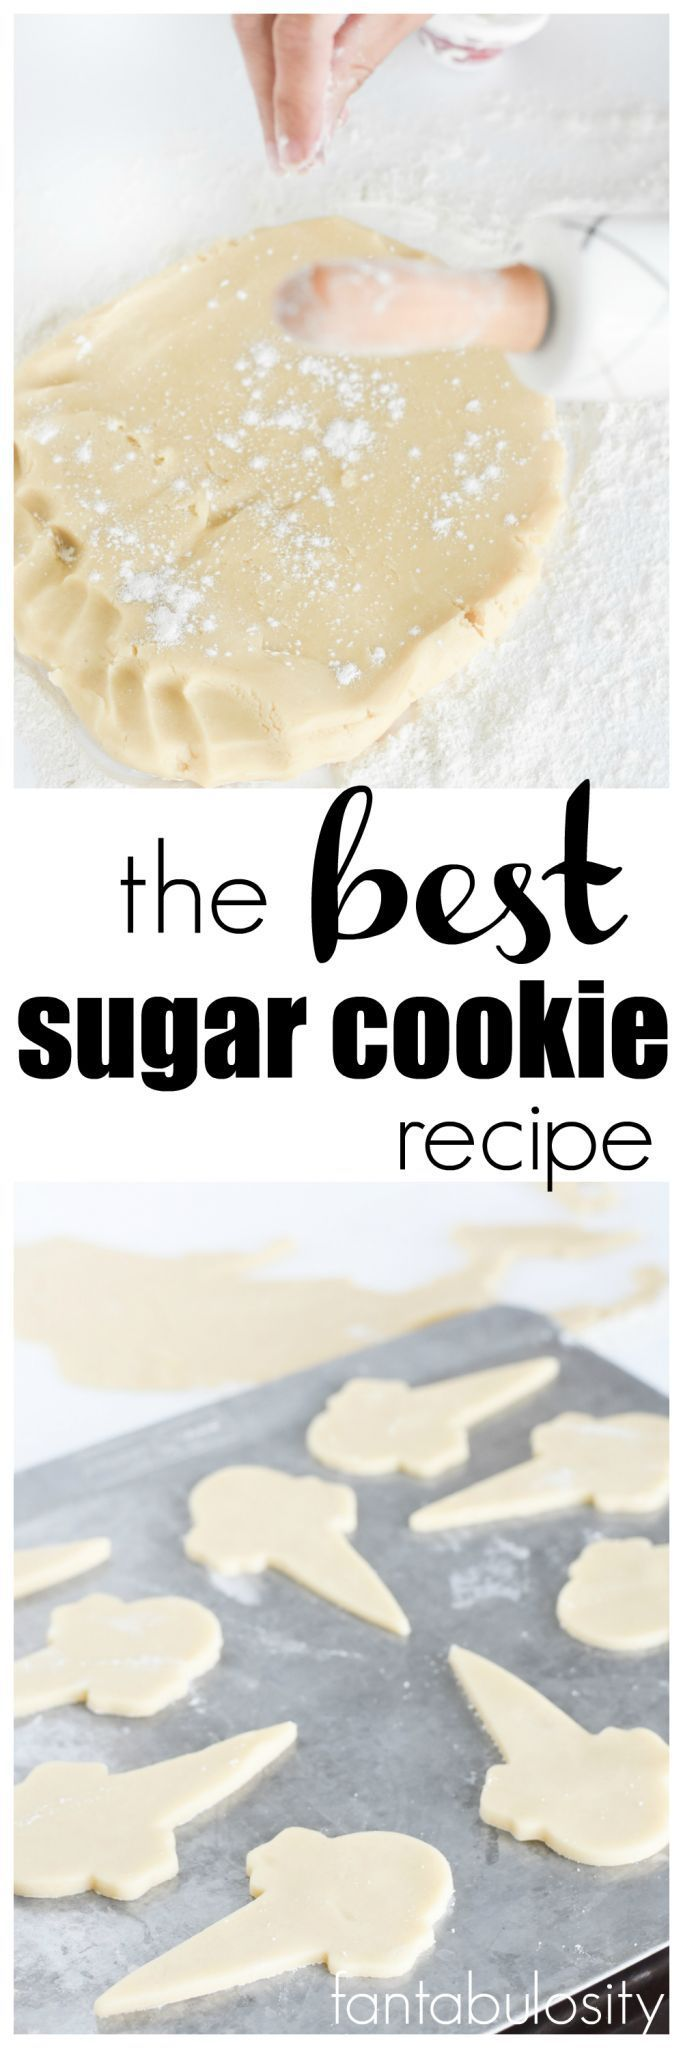 The BEST Sugar Cookie Recipe for decorating and eating. After baking, freeze them